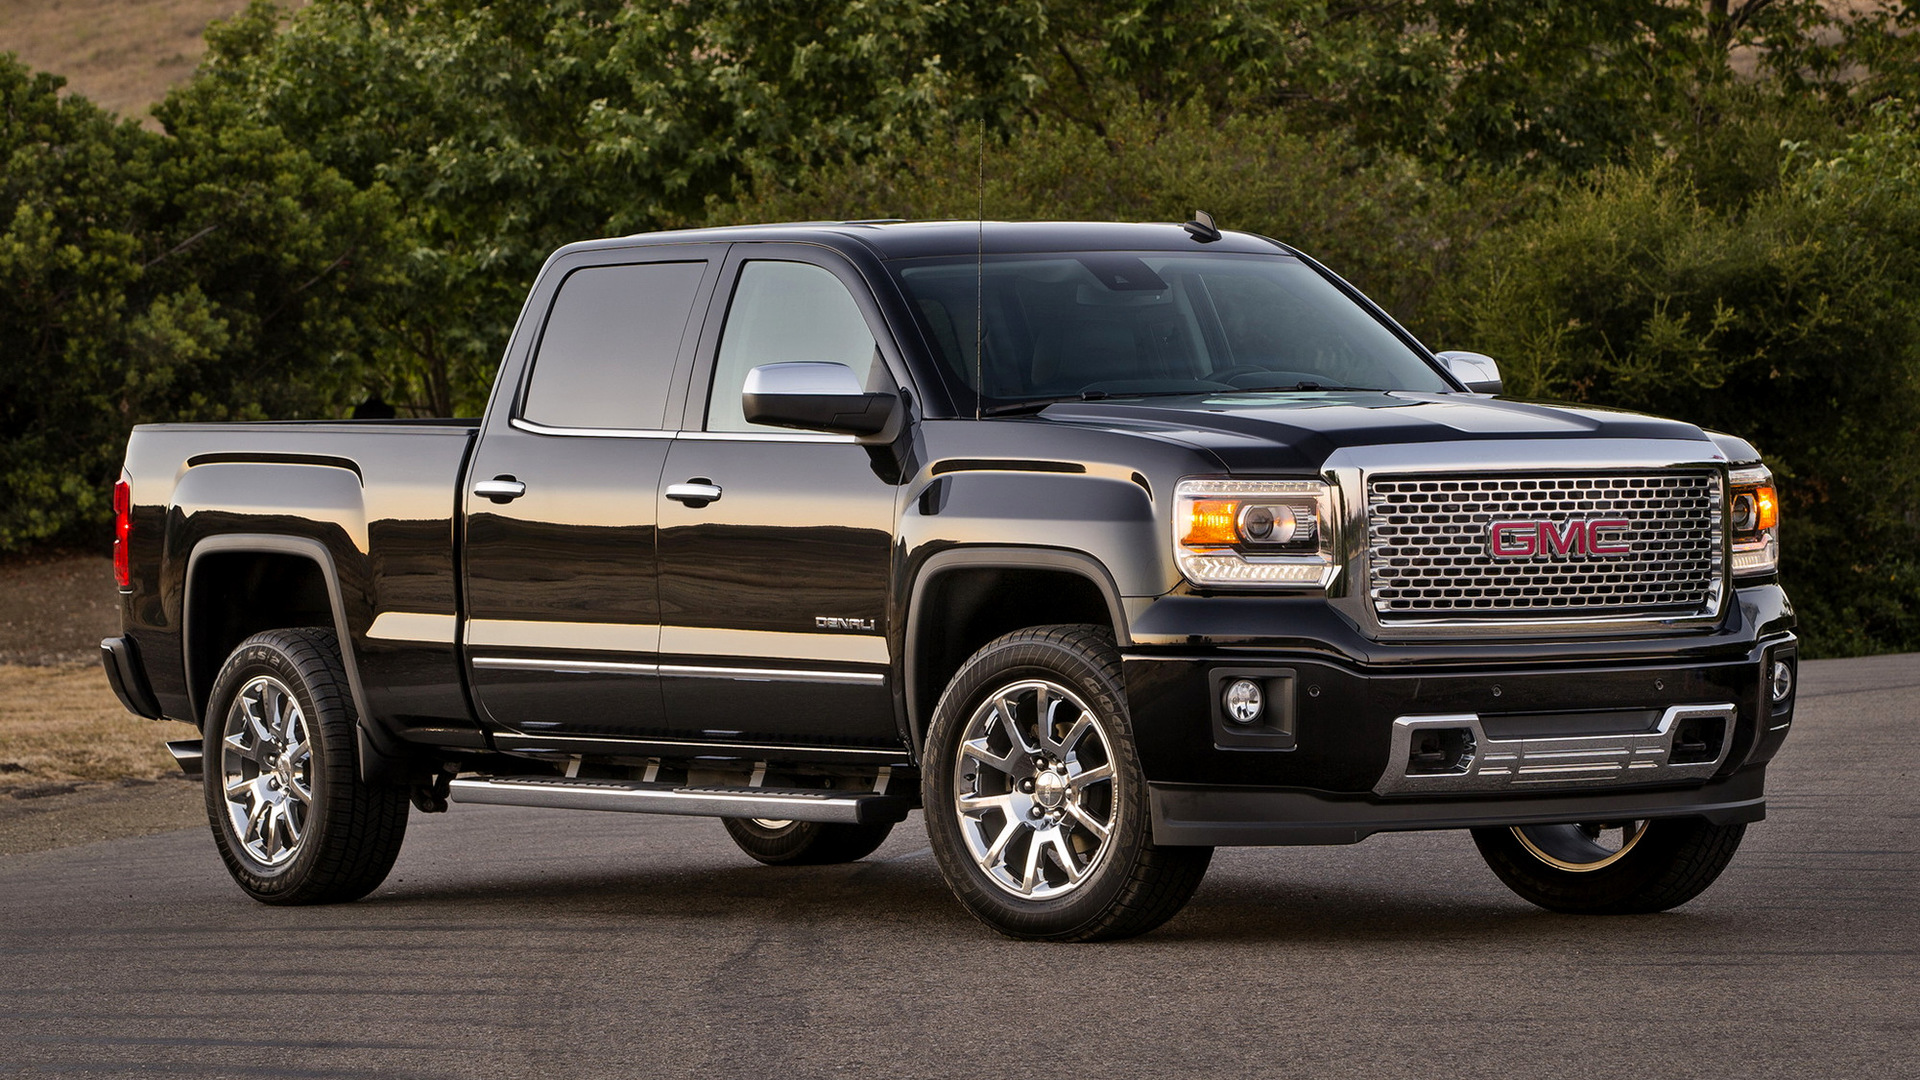 picb denali truth hd miles a about in the cars gmc review